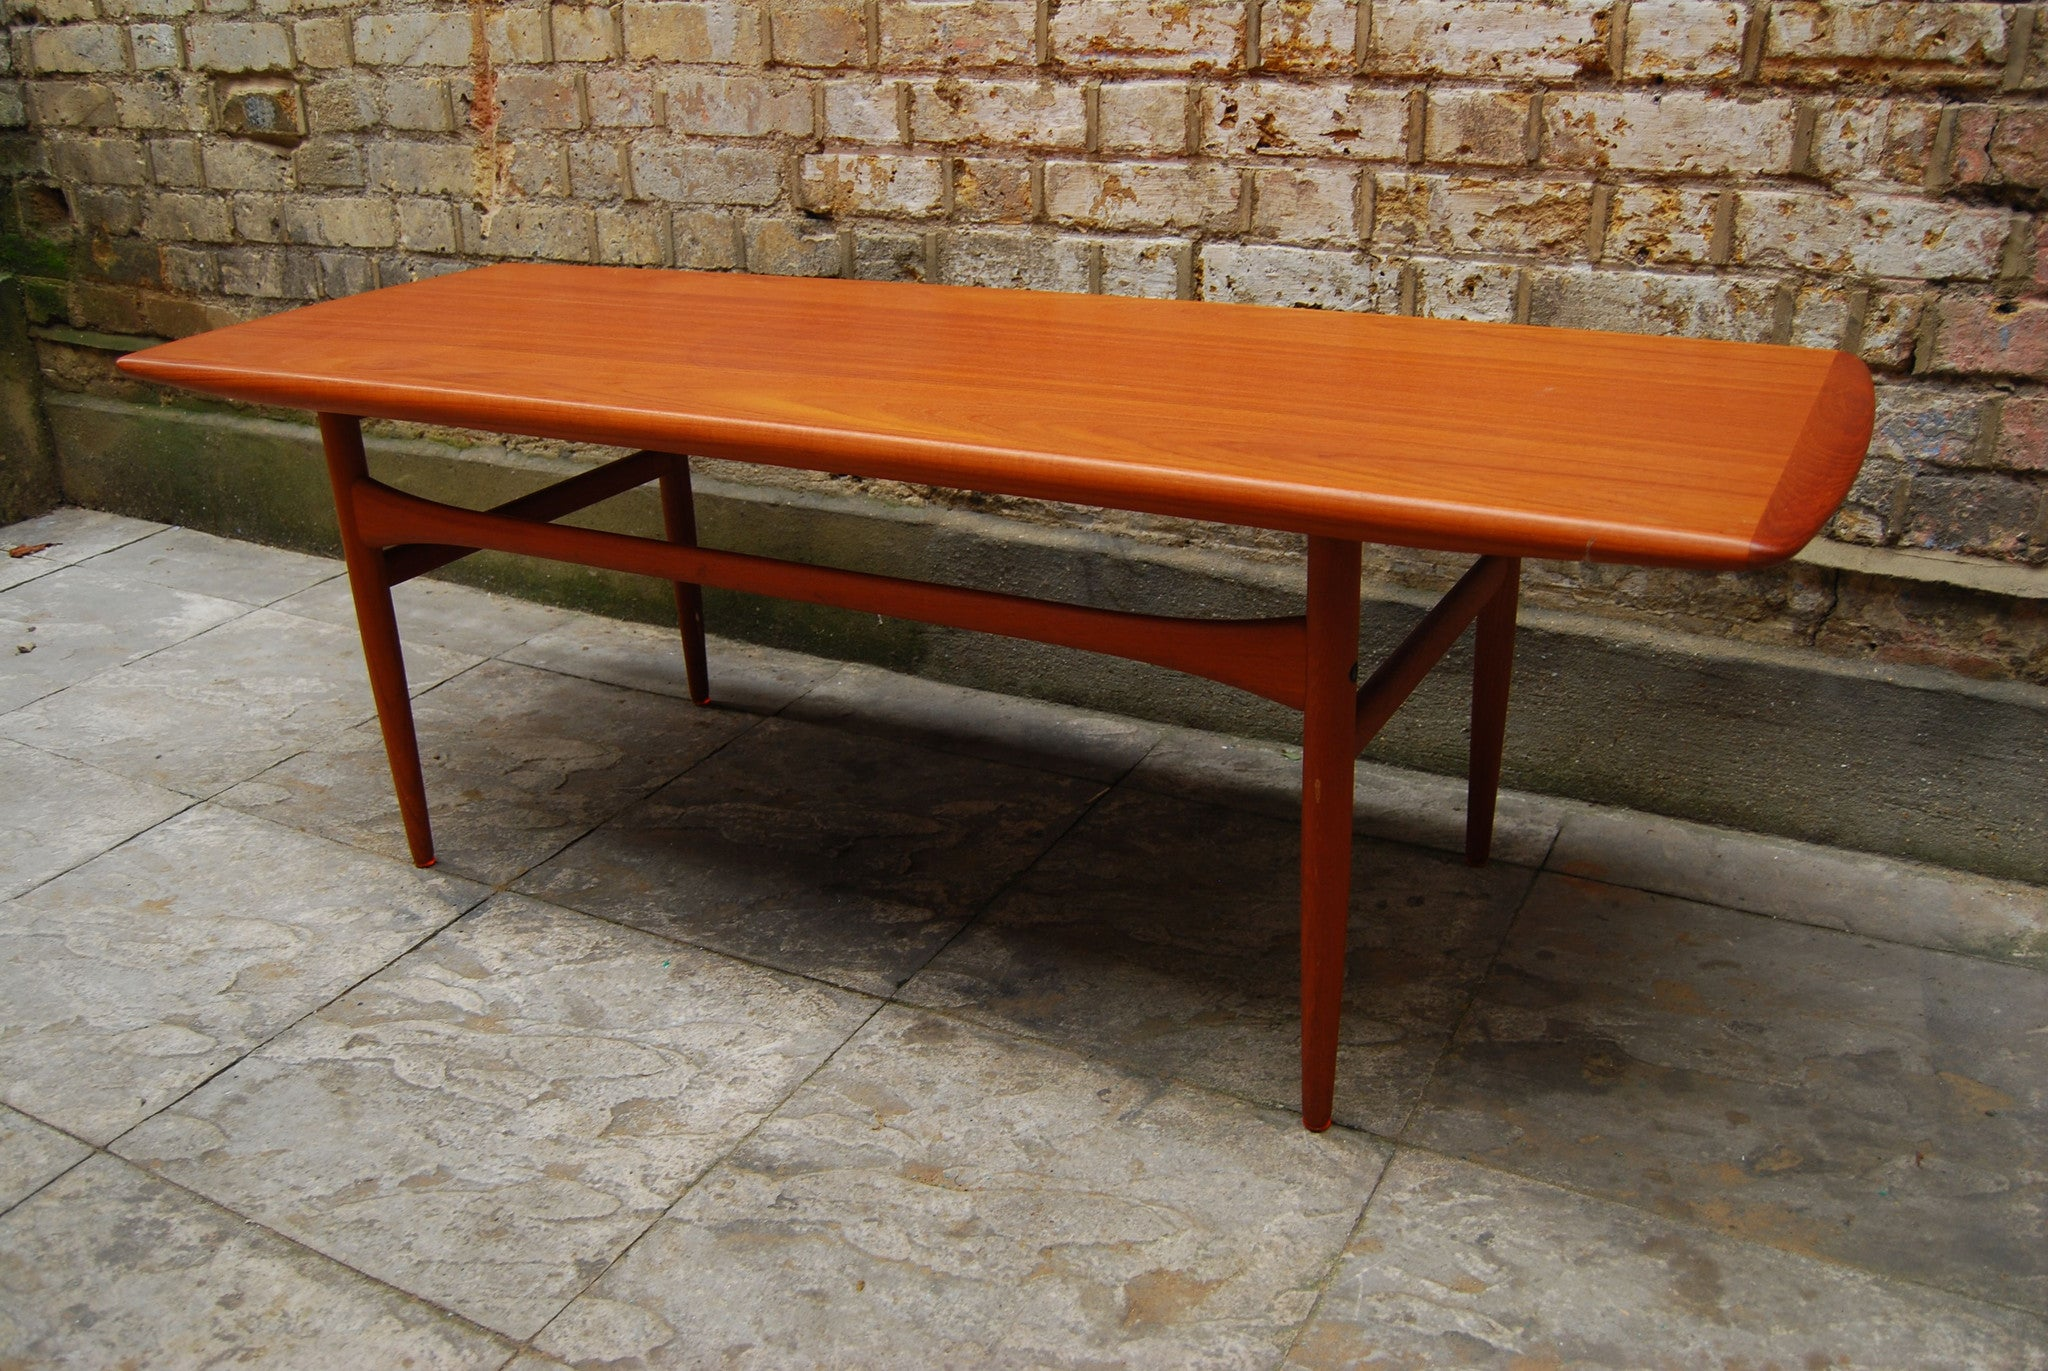 Chase & Sorensen Teak coffee table by Grete Jalk